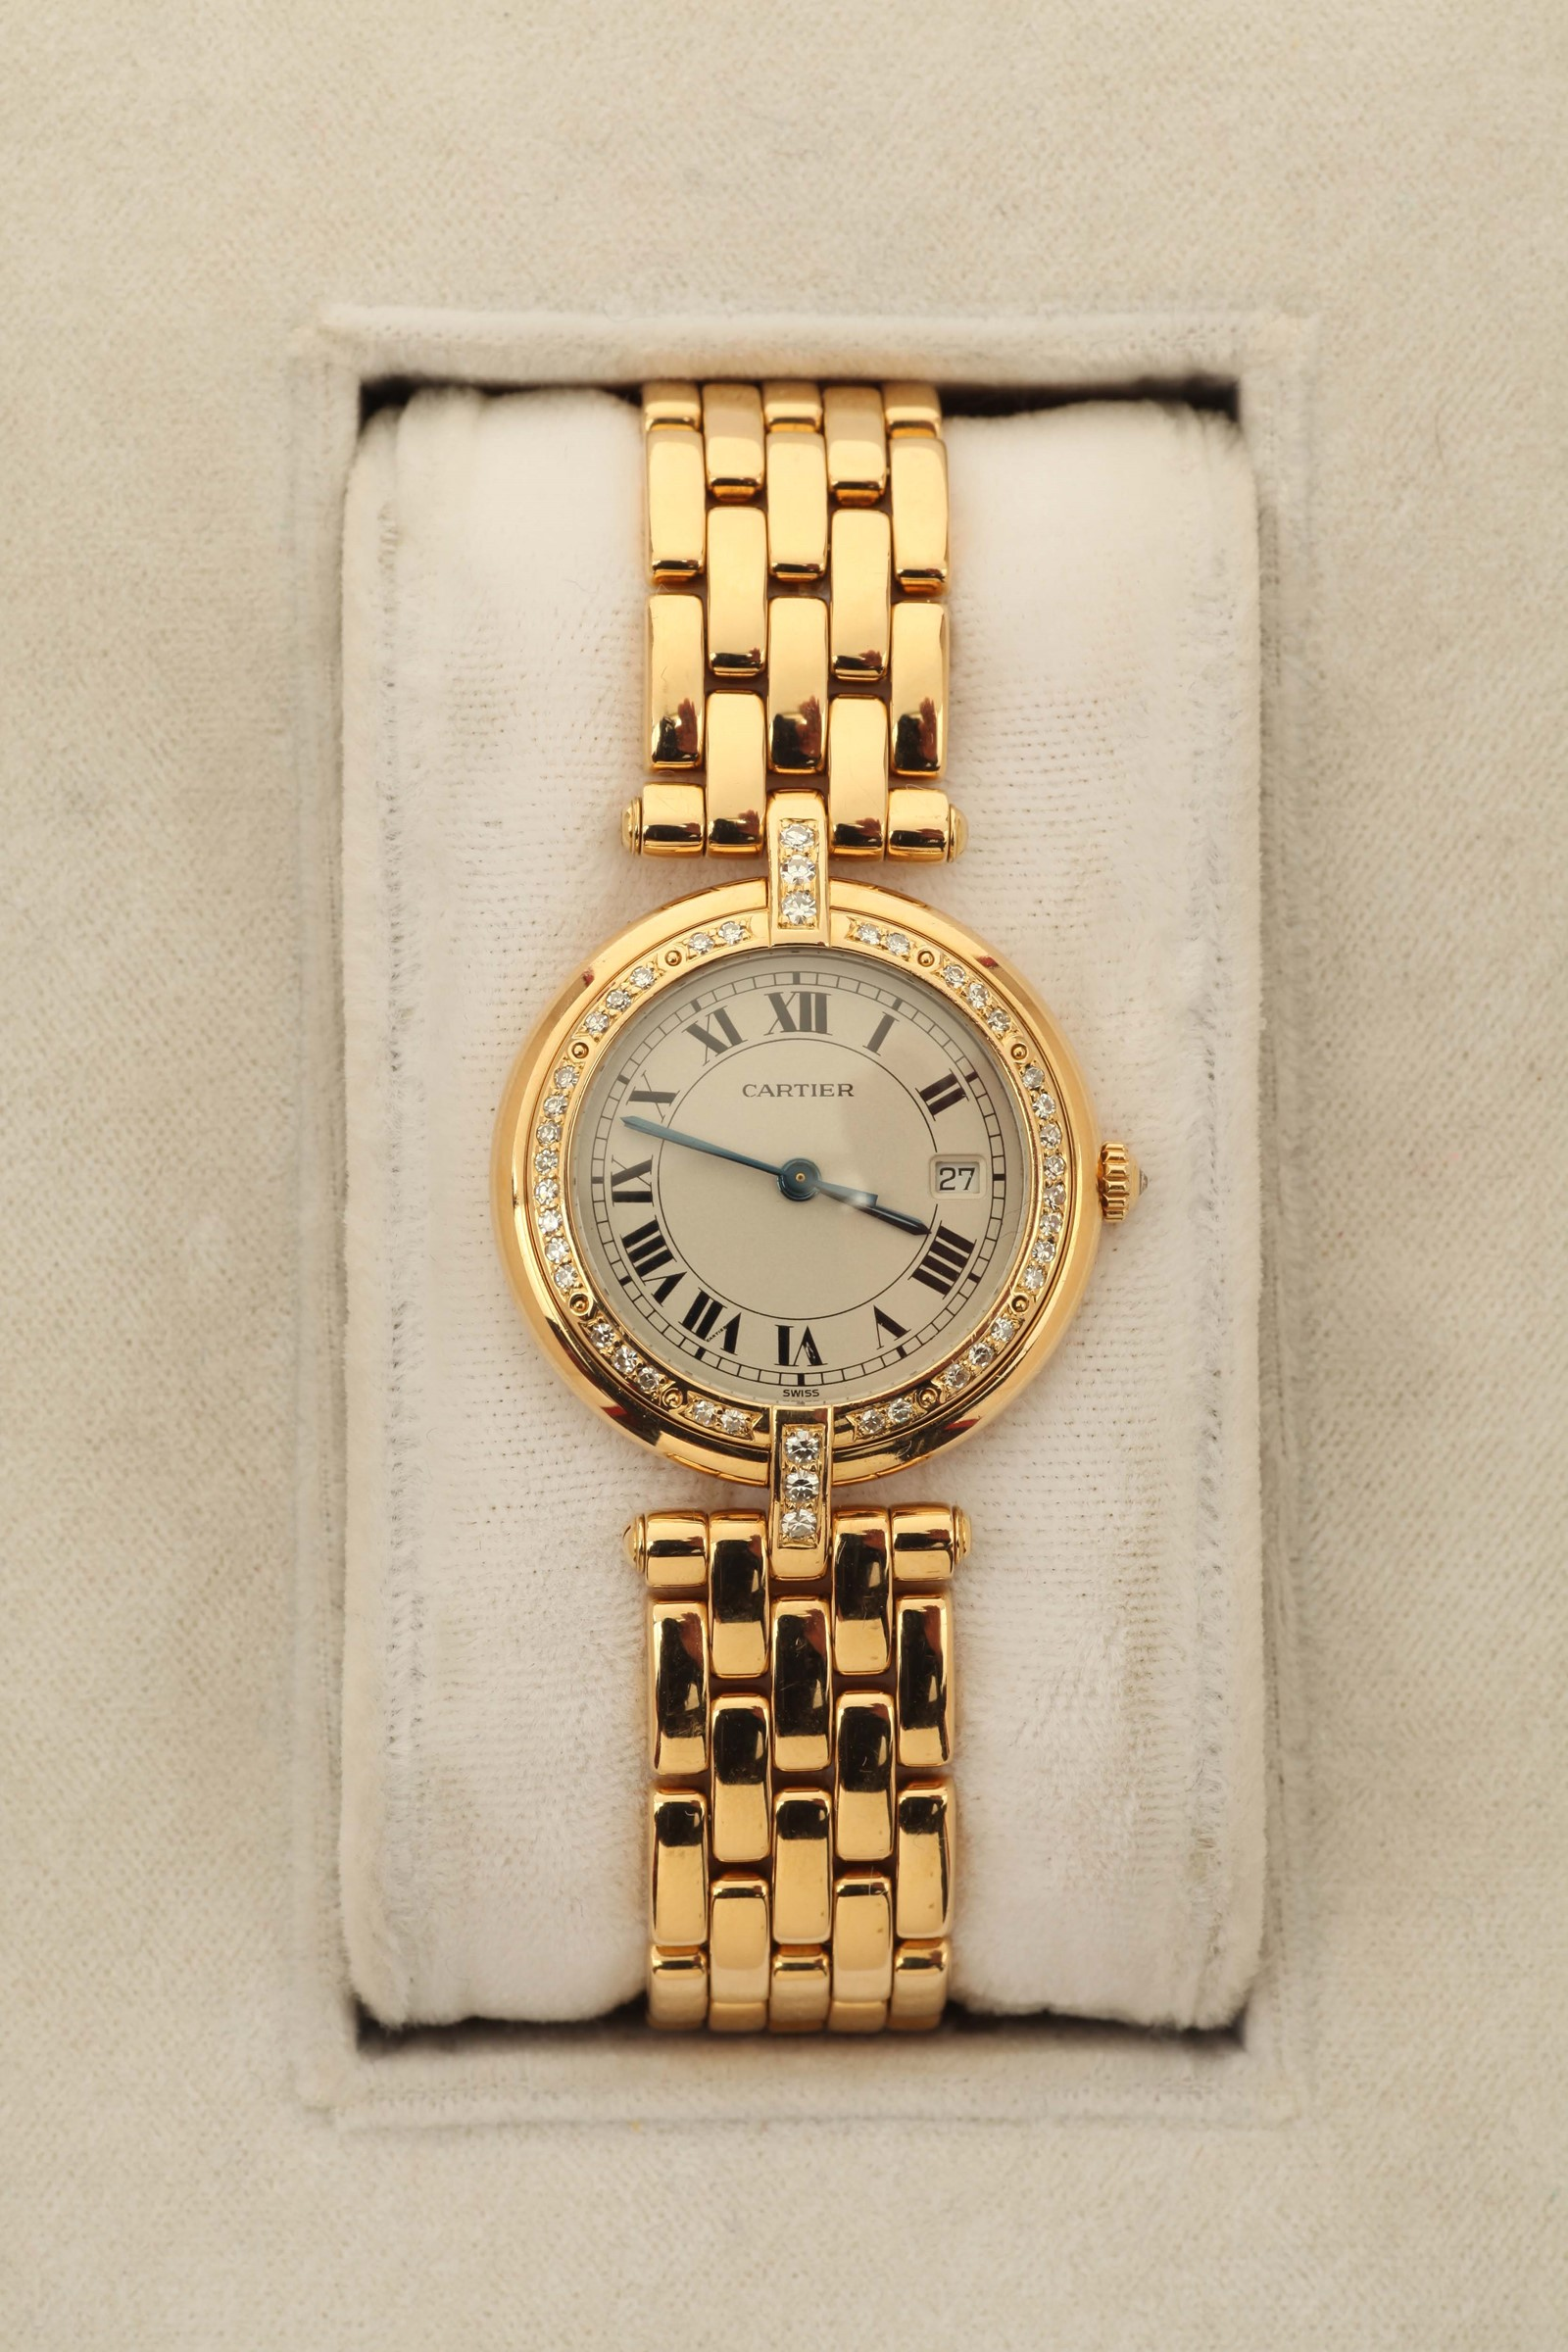 cartier non originali